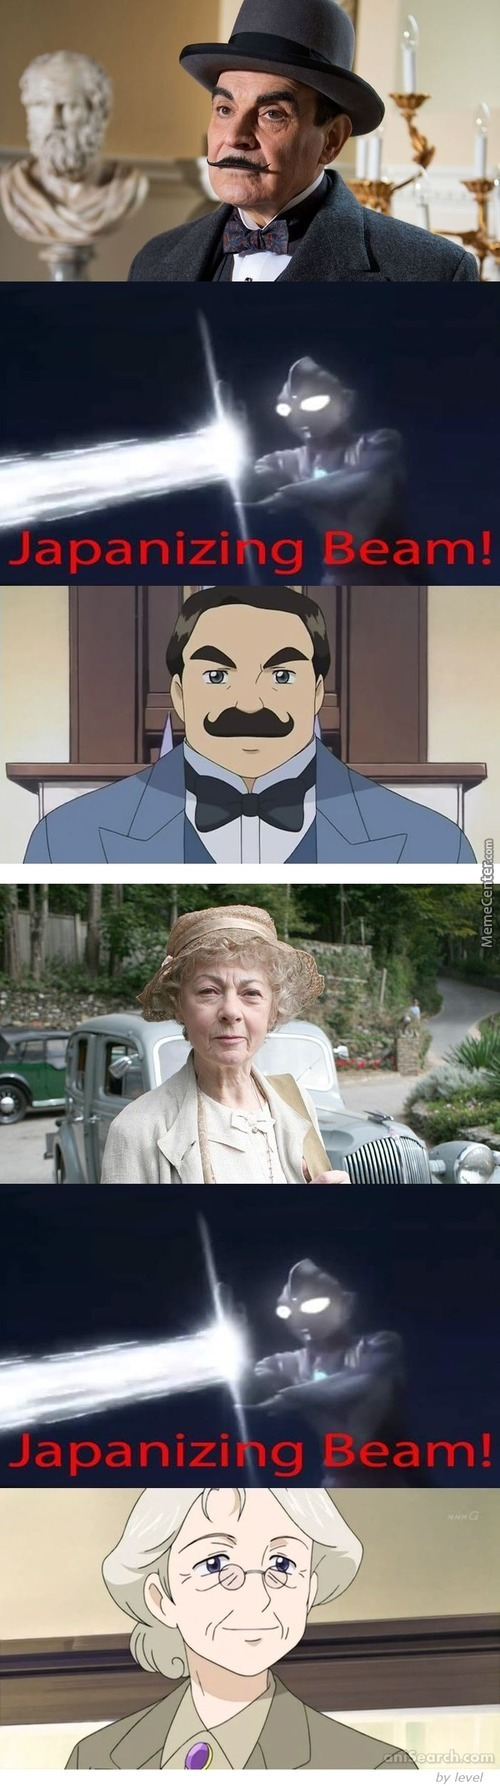 Poirot And Miss Marple In Japan (∩_∩)